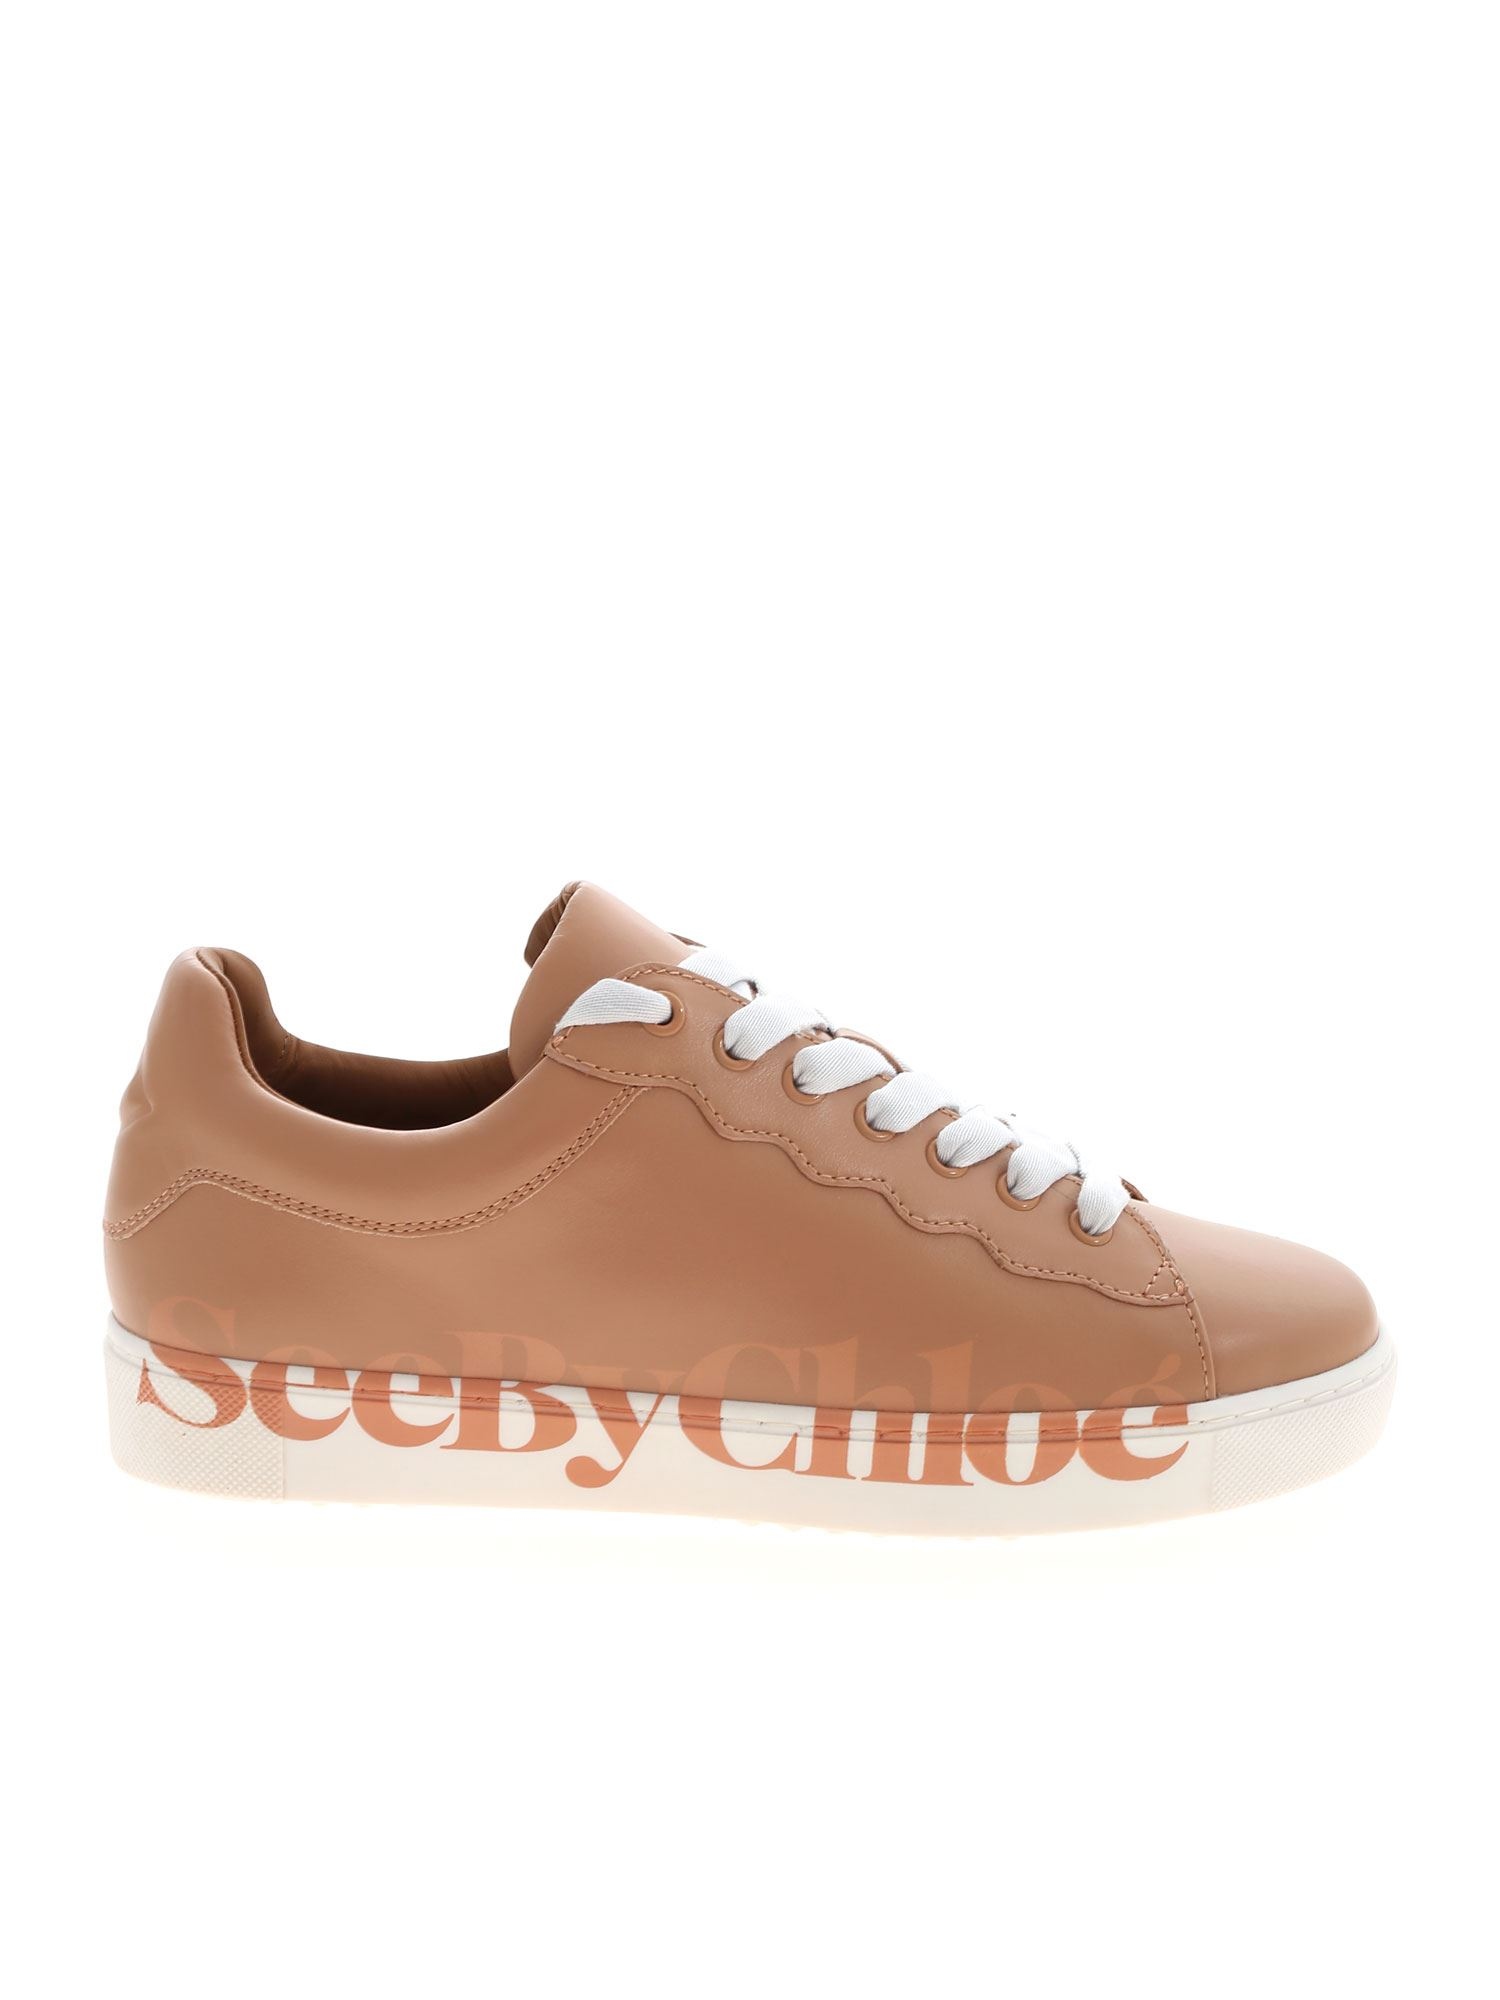 See By Chloé BENARES SNEAKERS IN NUDE COLOR